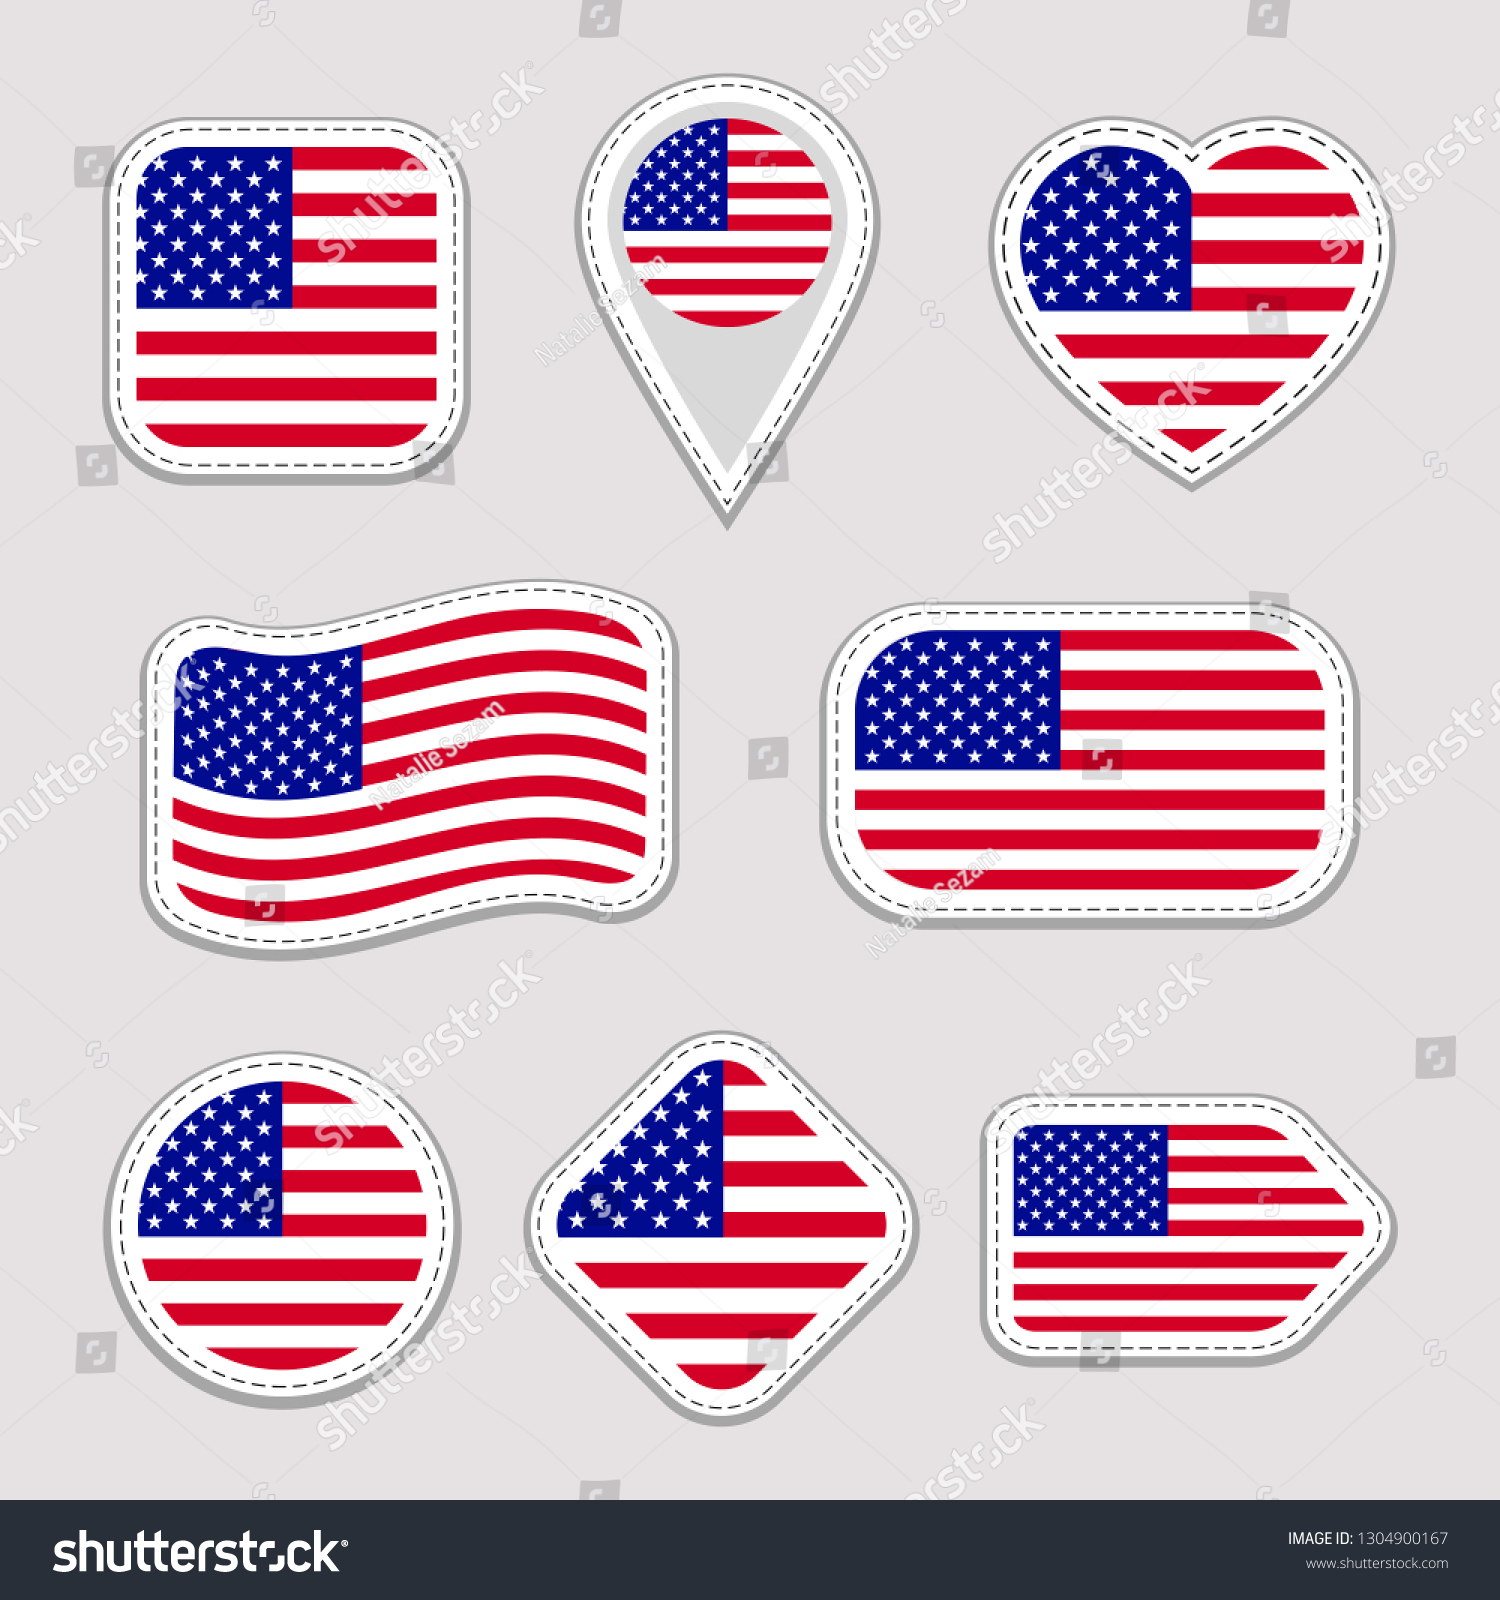 0b00fe700ed The USA flag set. American national flags stickers collection. isolated  geometric icons. Web